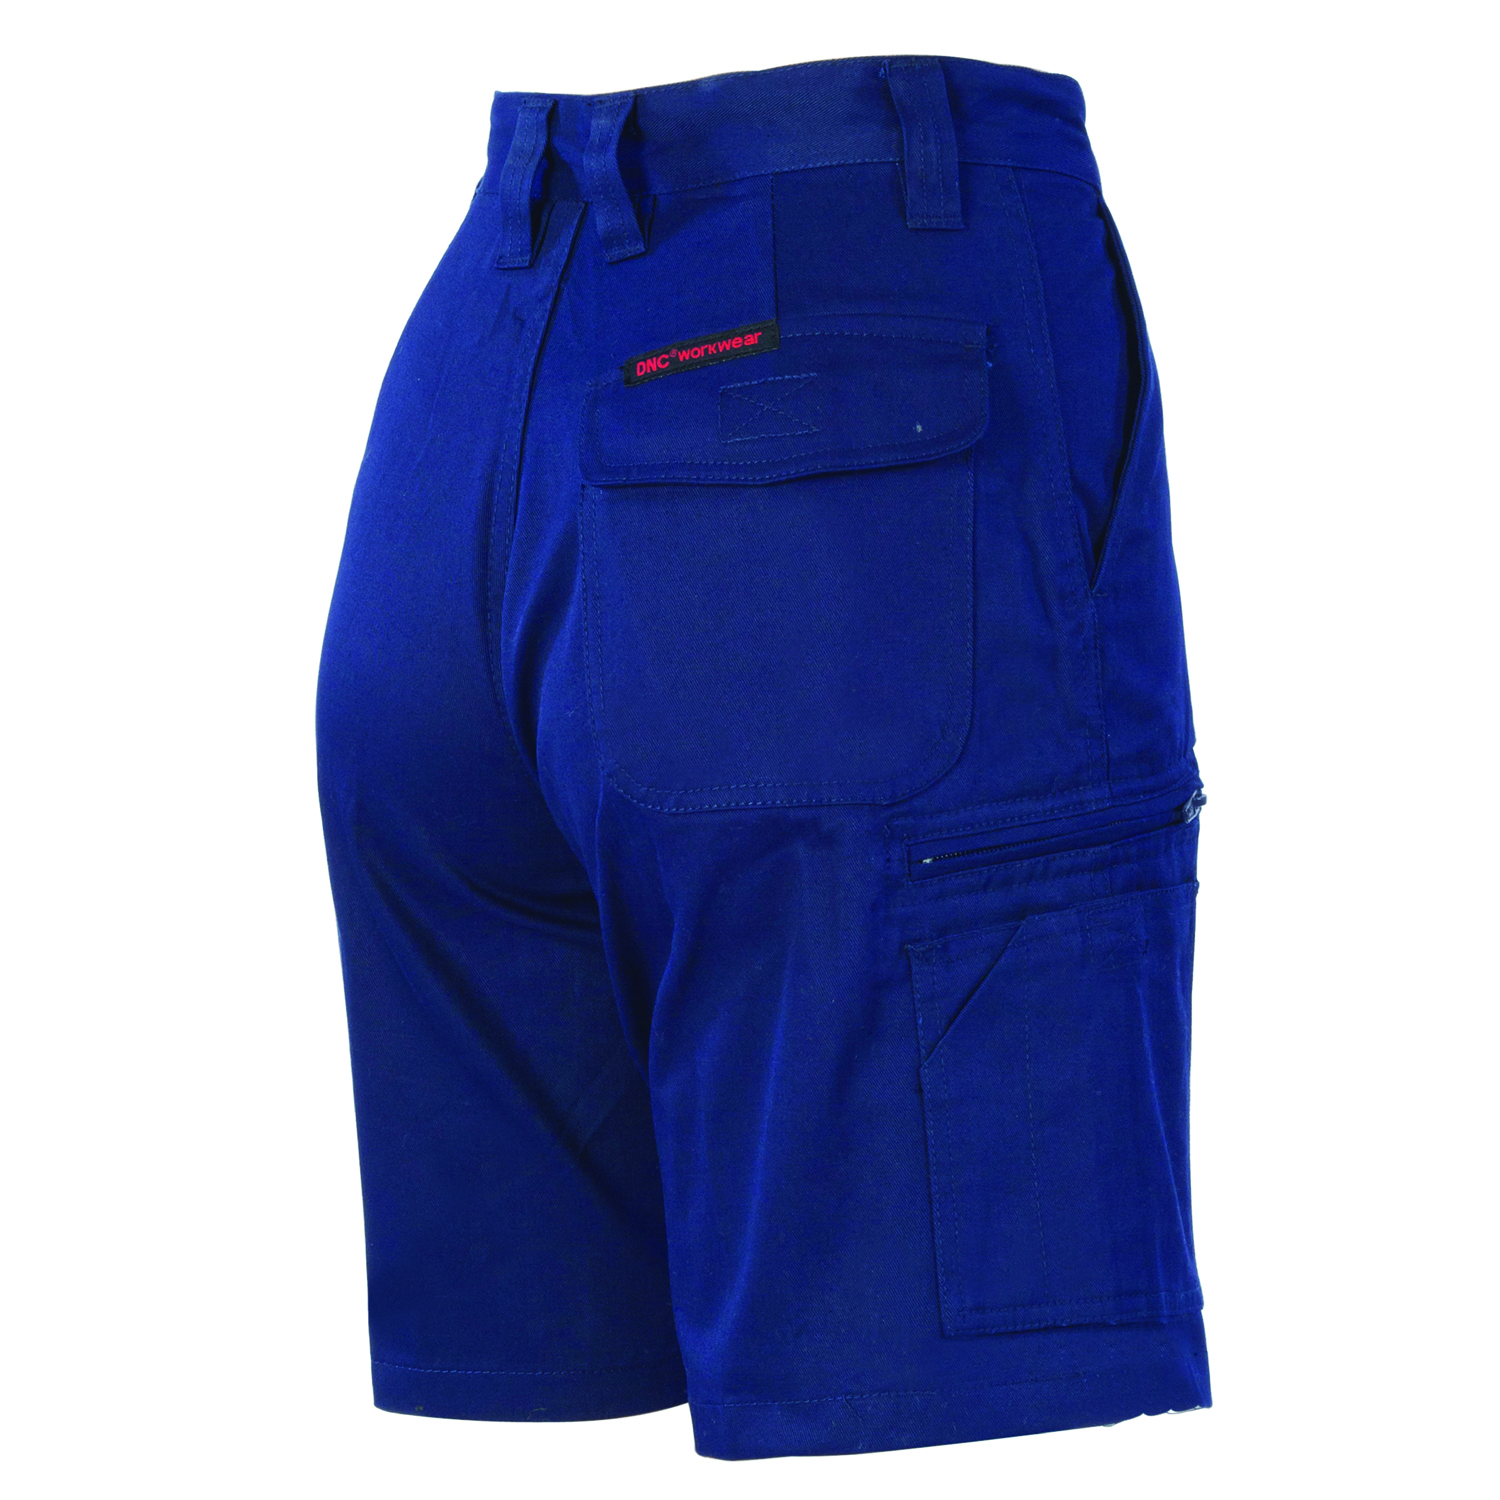 1d447021c0a93 Ladies Digga Cool -Breeze Cargo Shorts. Loading zoom · Loading zoom